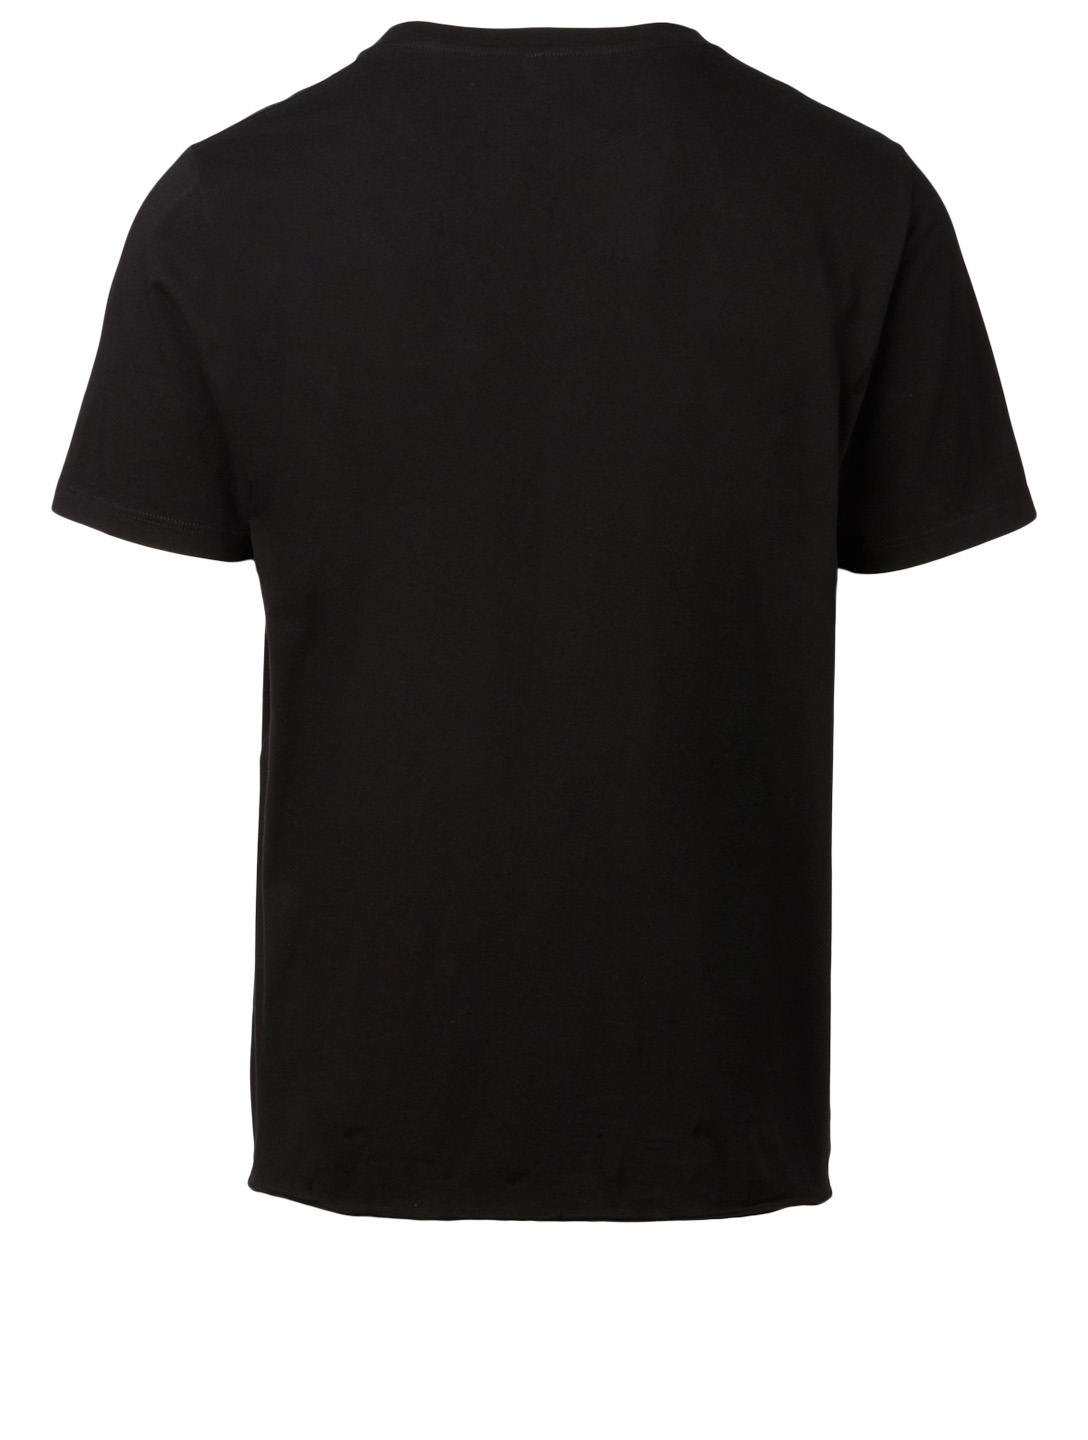 SAINT LAURENT Cotton T-Shirt With Poster Logo Men's Black